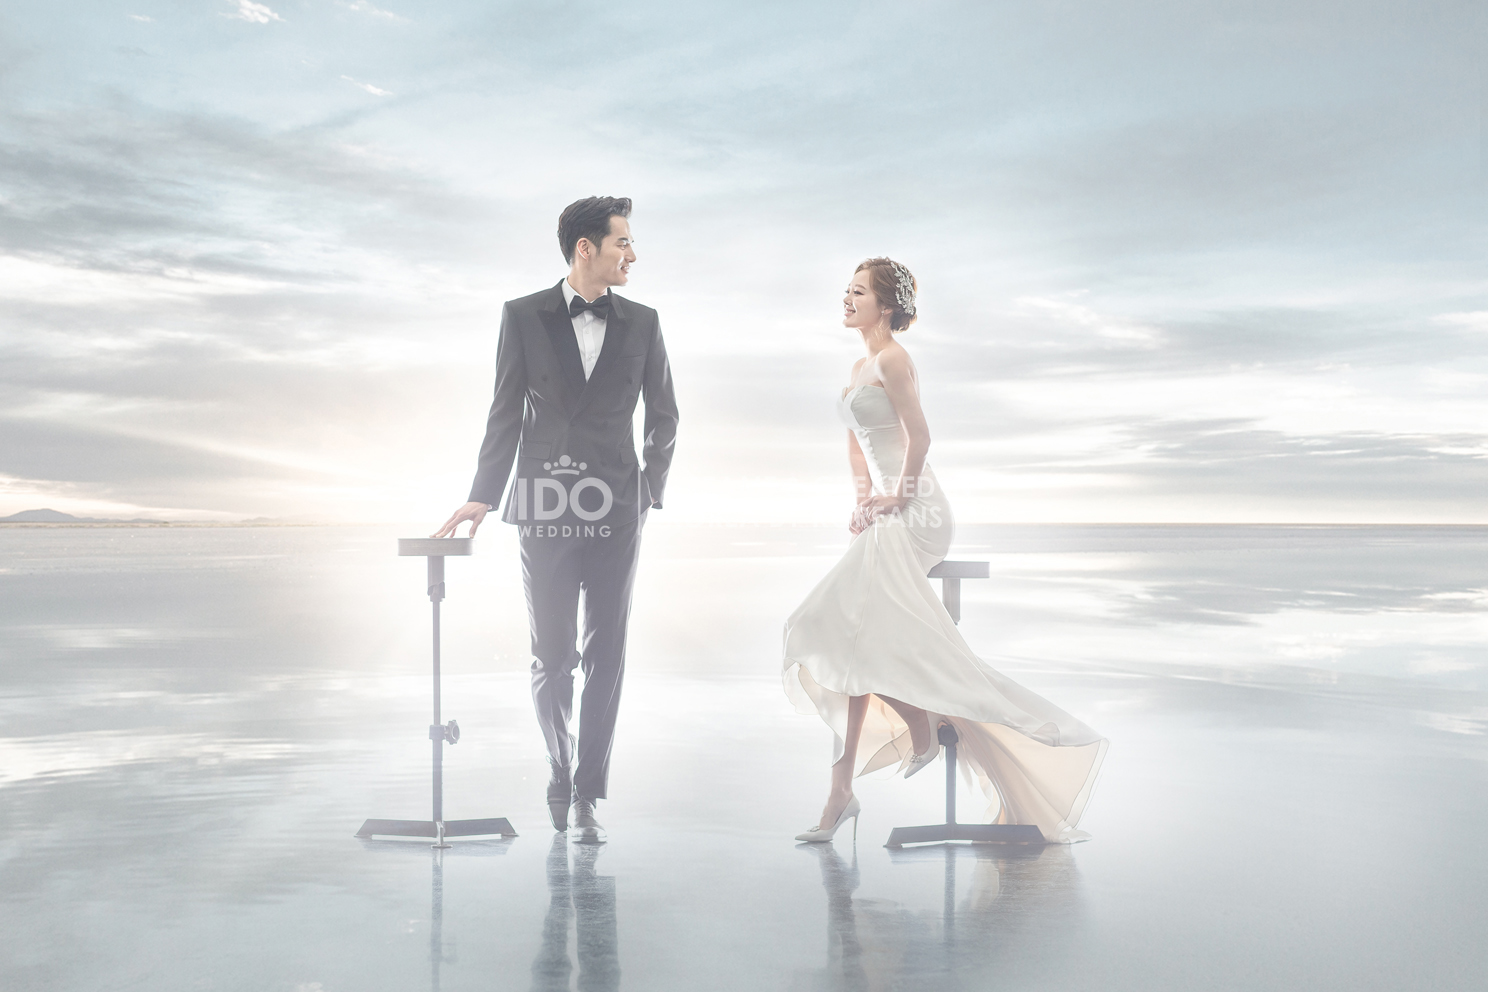 Korea Pre Wedding Photo Studio Ss37 Korean Wedding Photo Ido Wedding